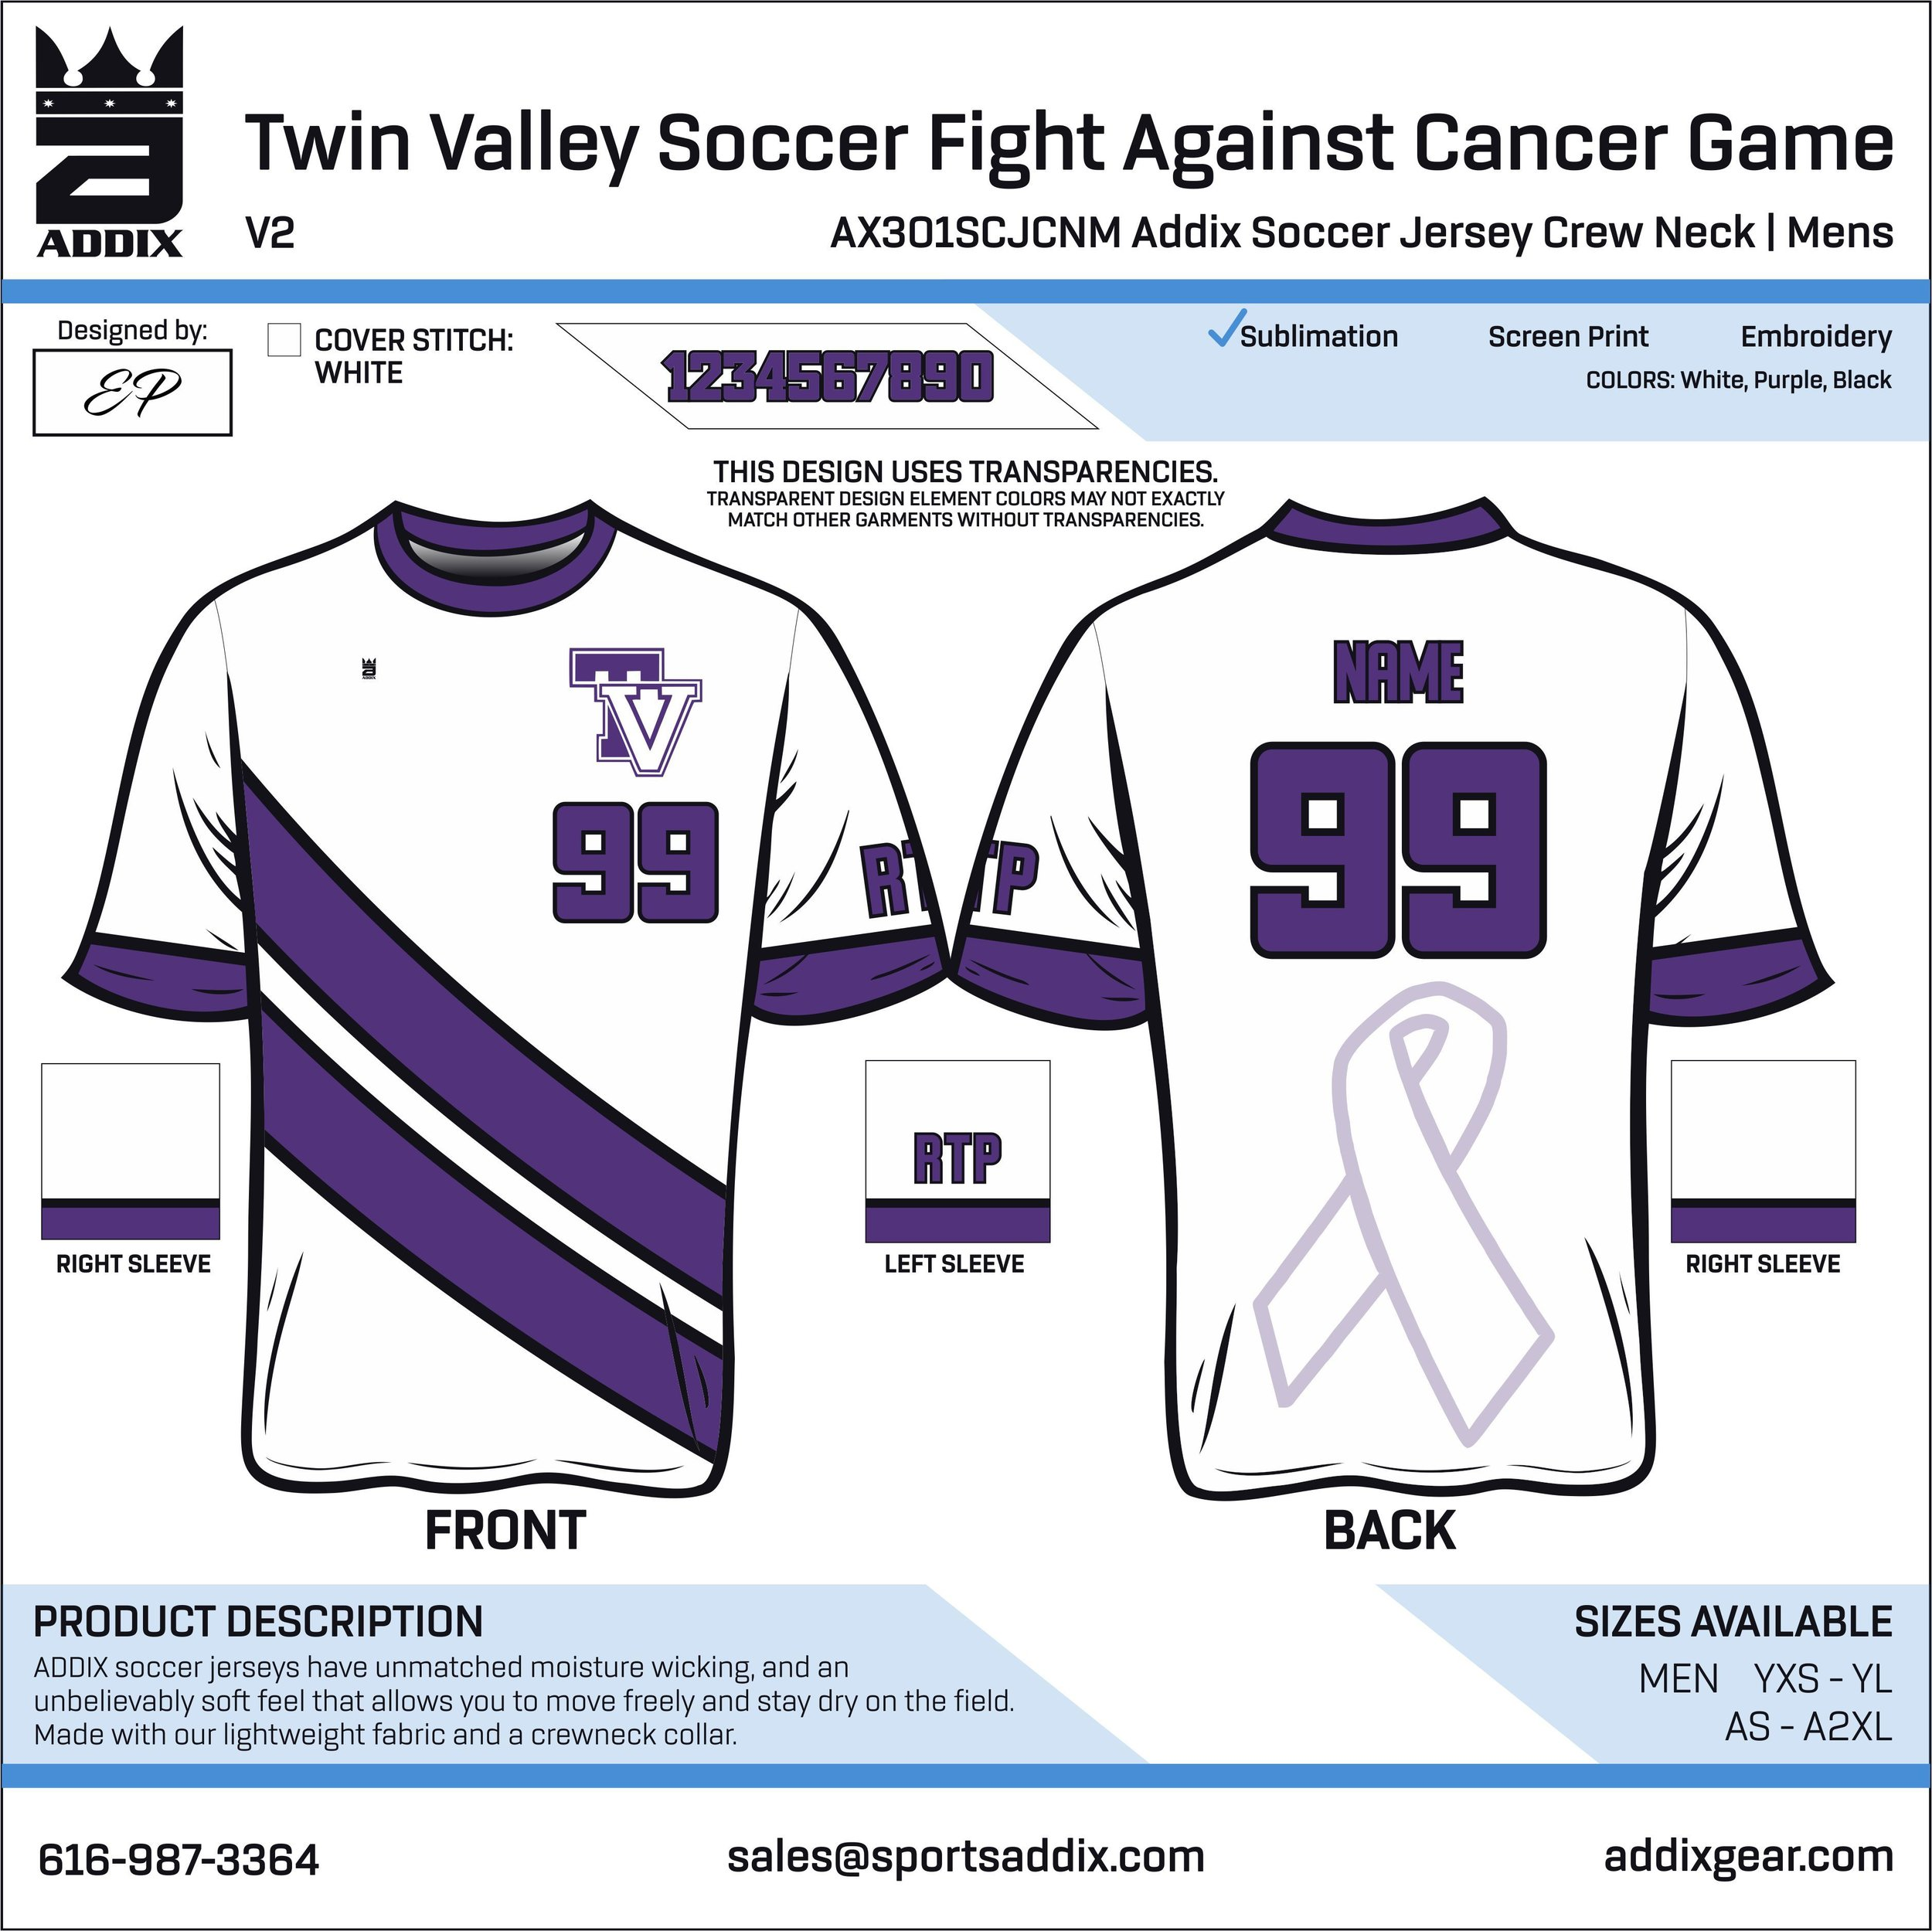 Twin Valley Soccer Fight Against Cancer Game_2019_8-19_EP_soccer jersey crewneck.jpg